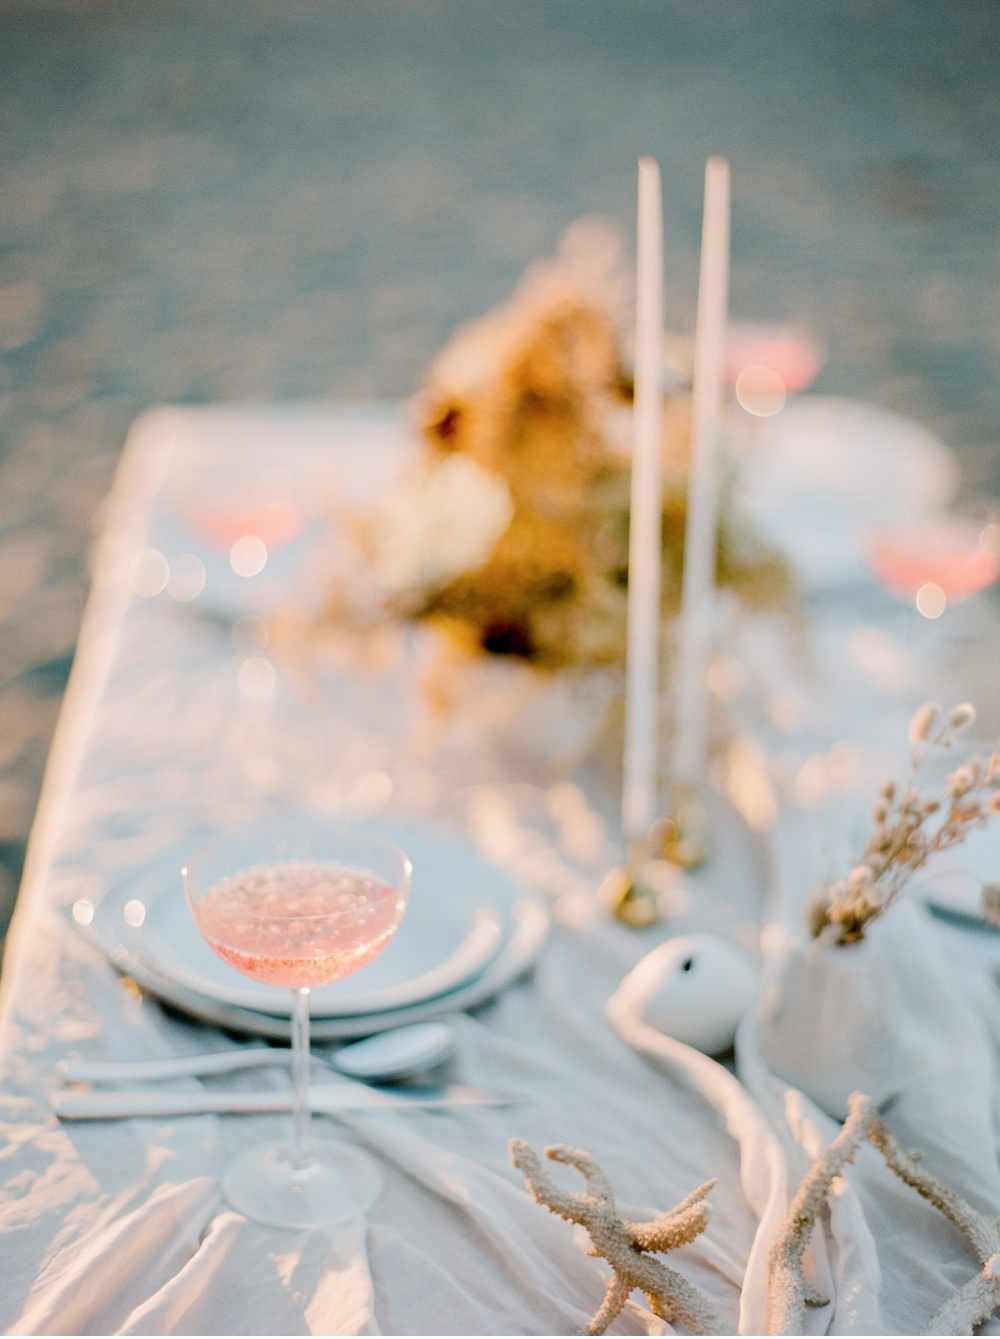 Destination_Wedding_Photographer_France_Italy©MadalinaSheldon_0004.jpg